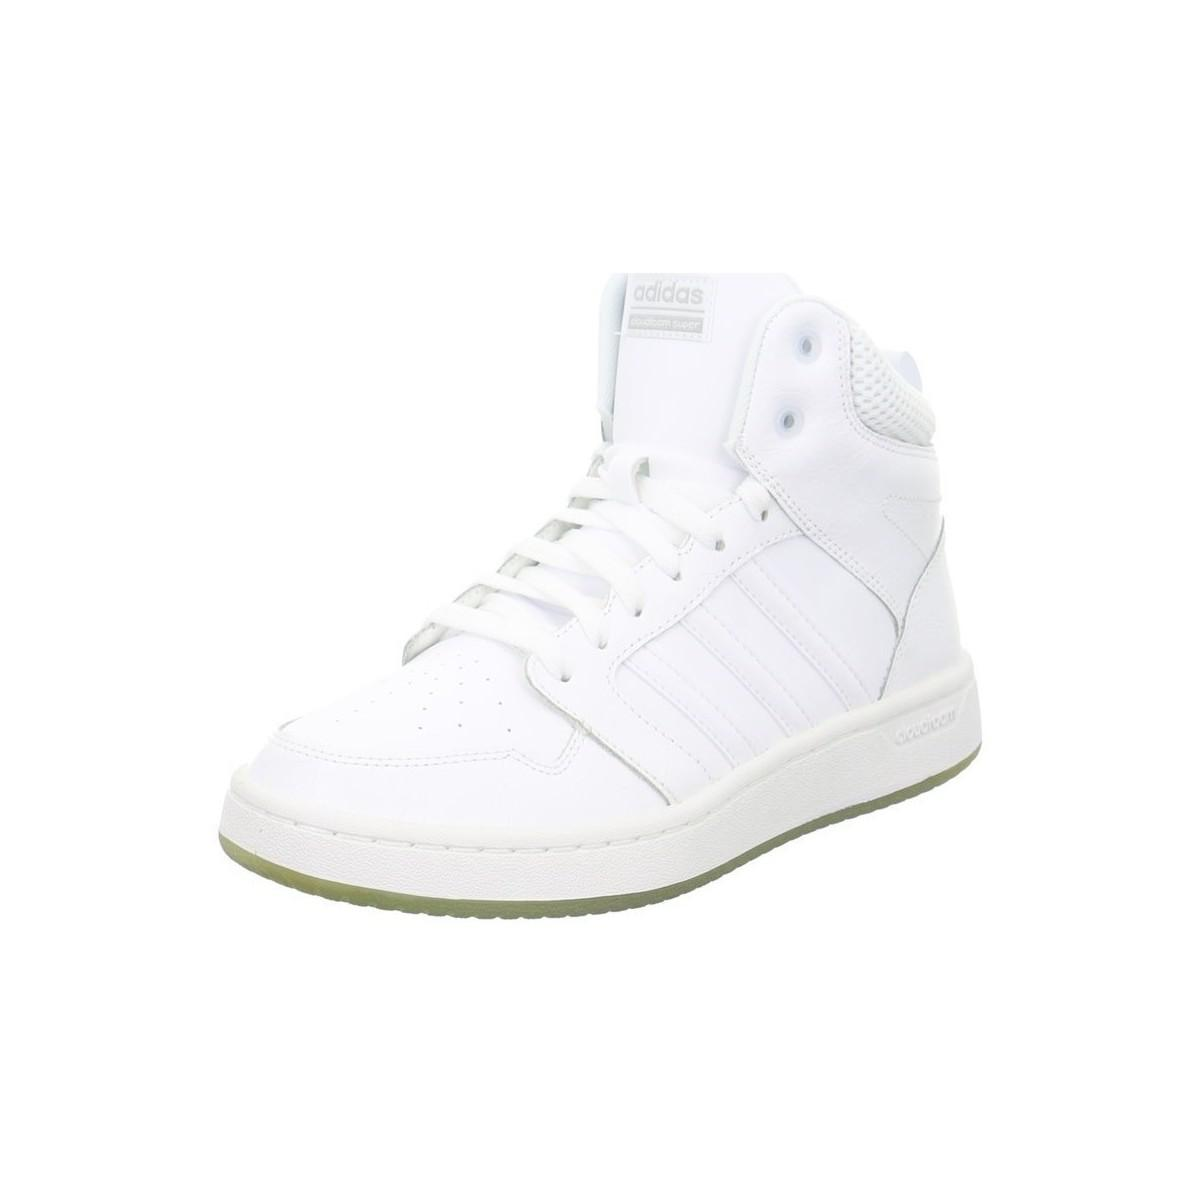 new product 937f1 ff275 adidas Cloudfoam Super Hoops Mid Sneaker Men s Shoes (high-top ...